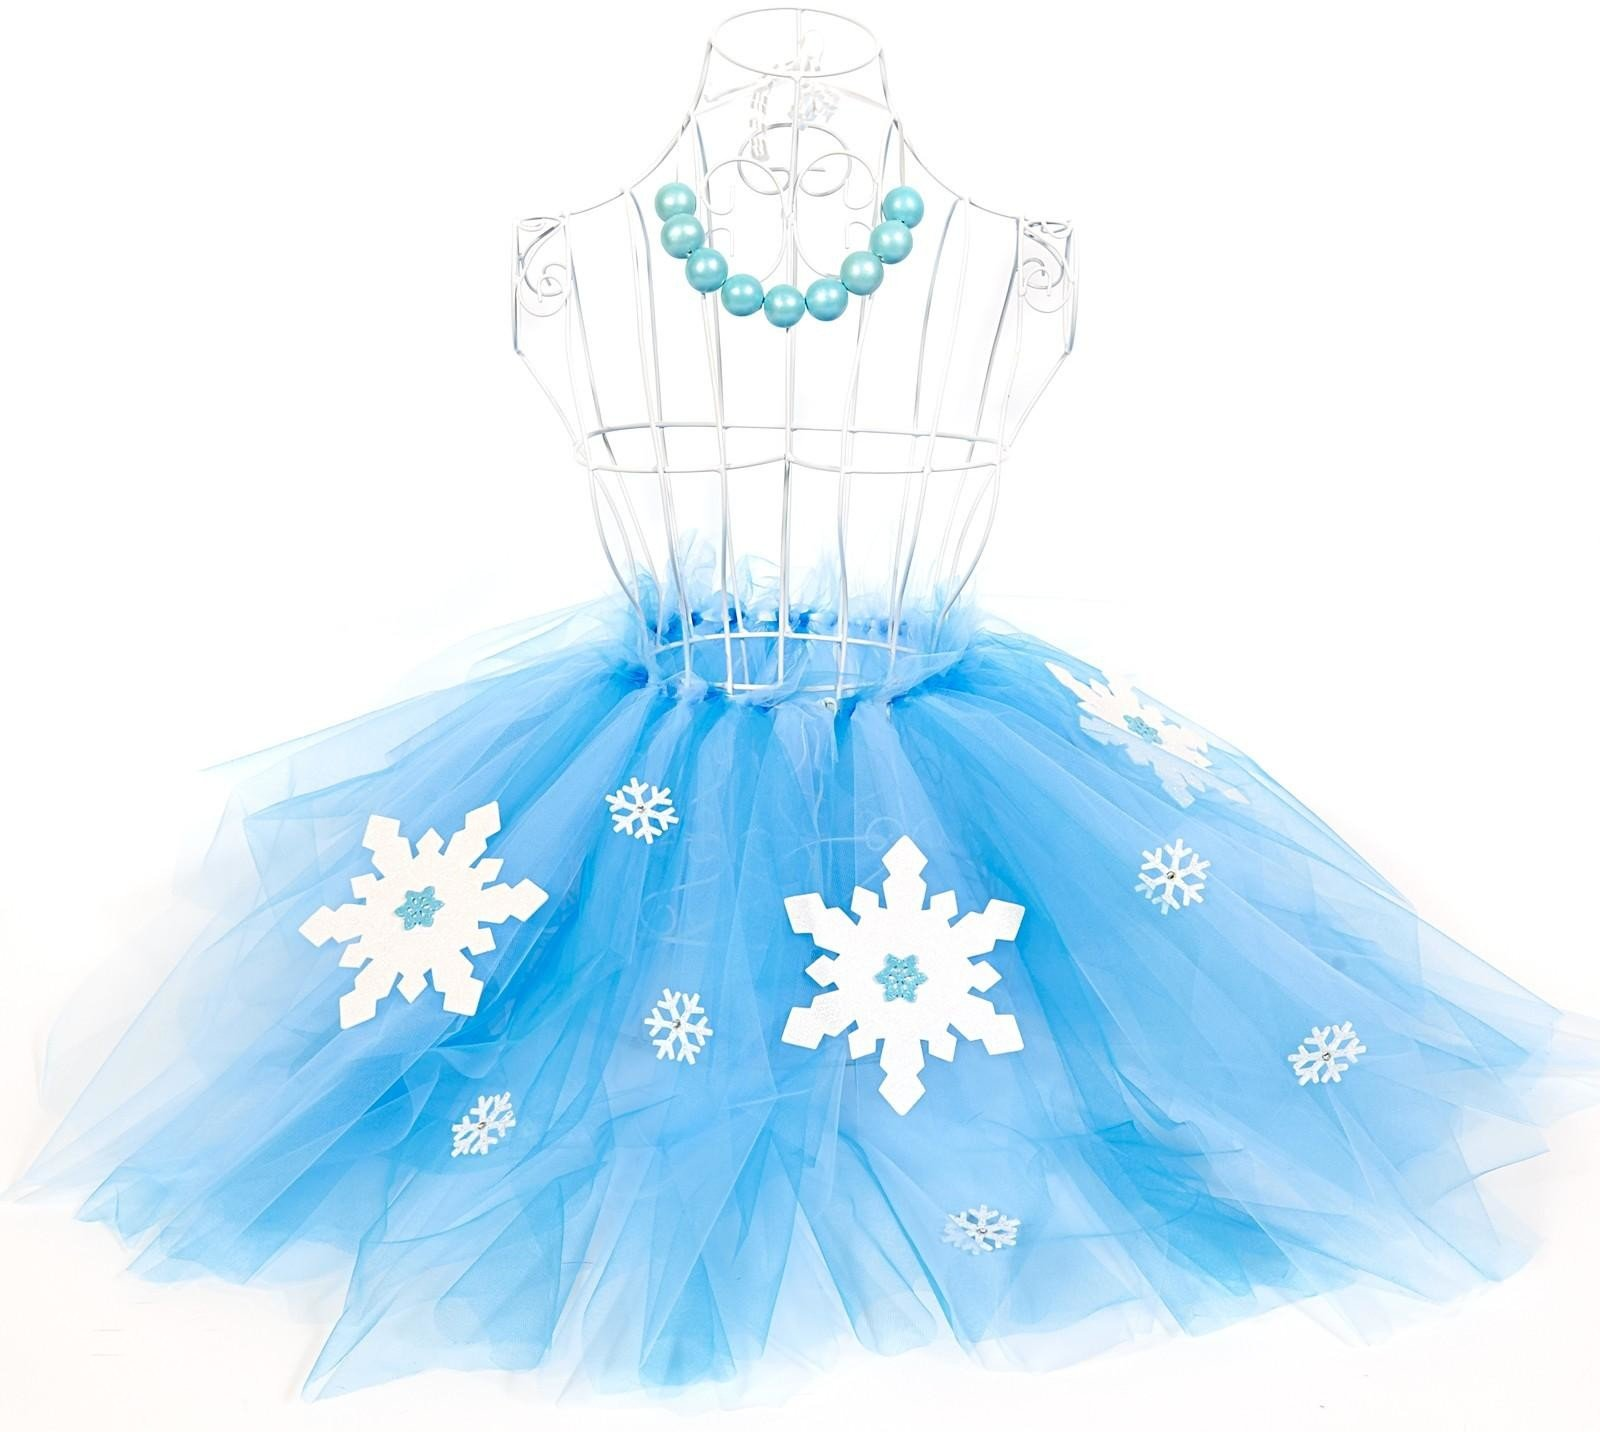 D.I.Y. Snowflake Winter Wonderland Tutu and Gumball Necklace